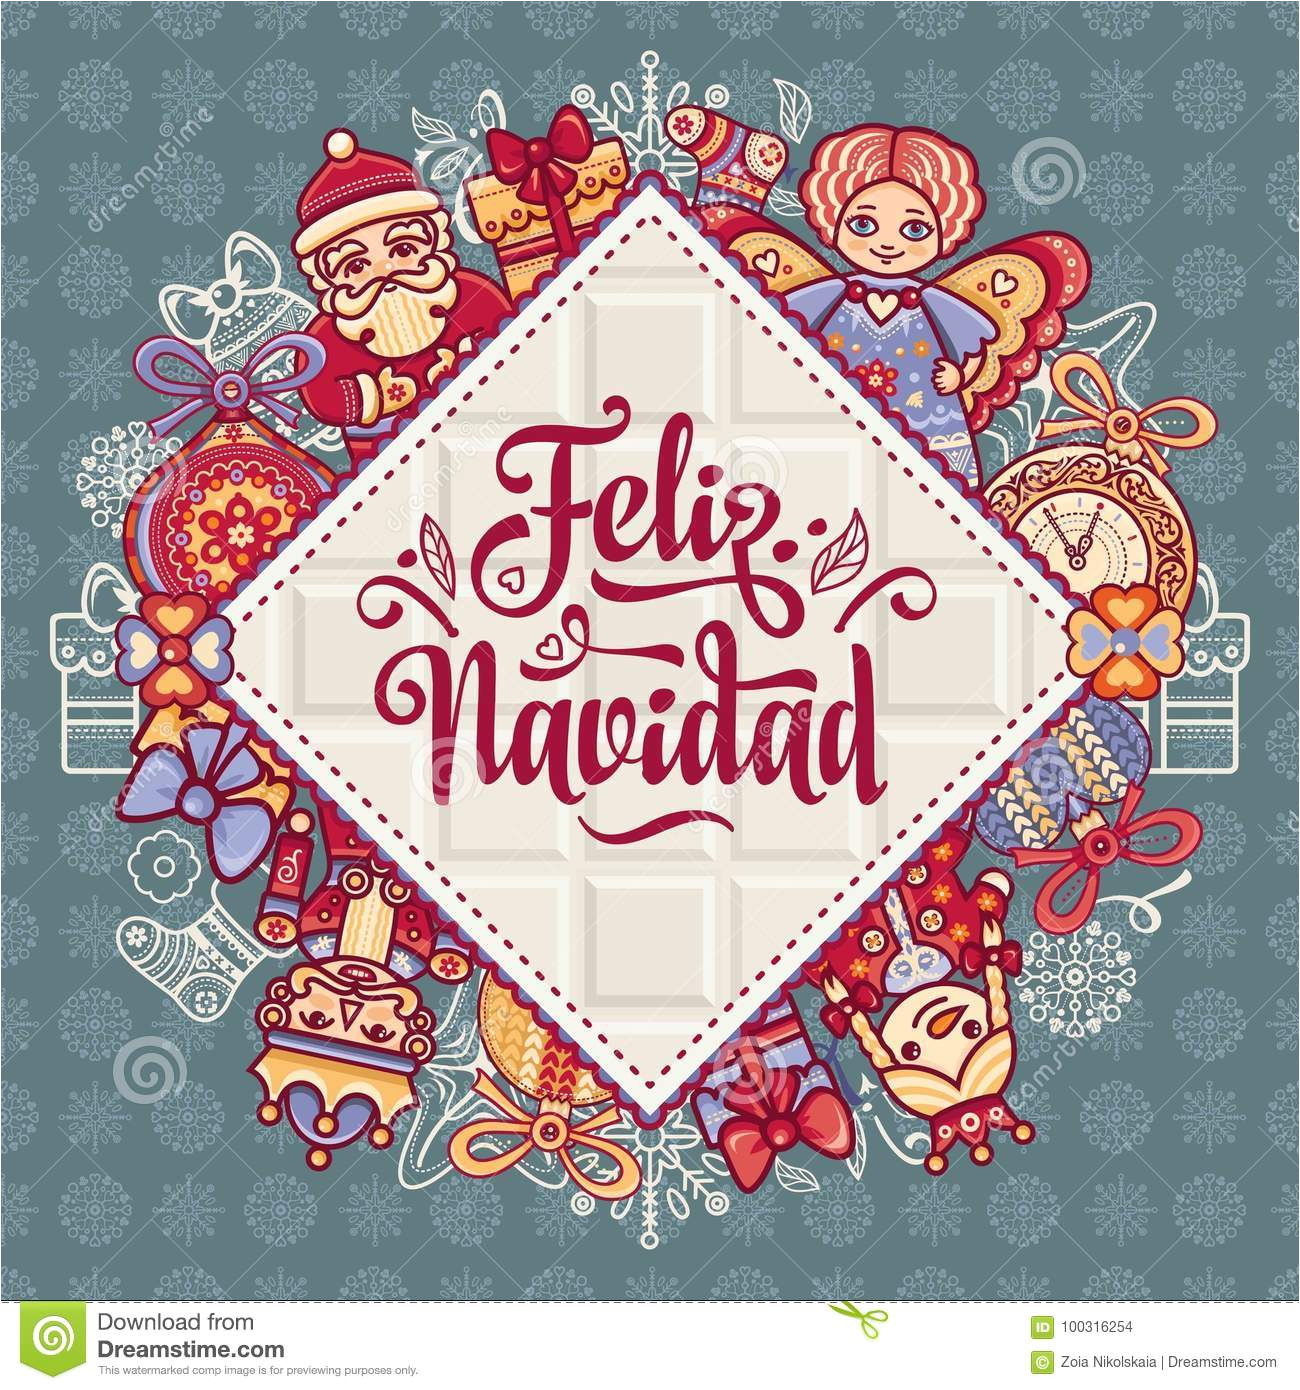 feliz navidad xmas card spanish language christmas decorations invitations greeting cards winter toy warm wishes happy 100316254 jpg